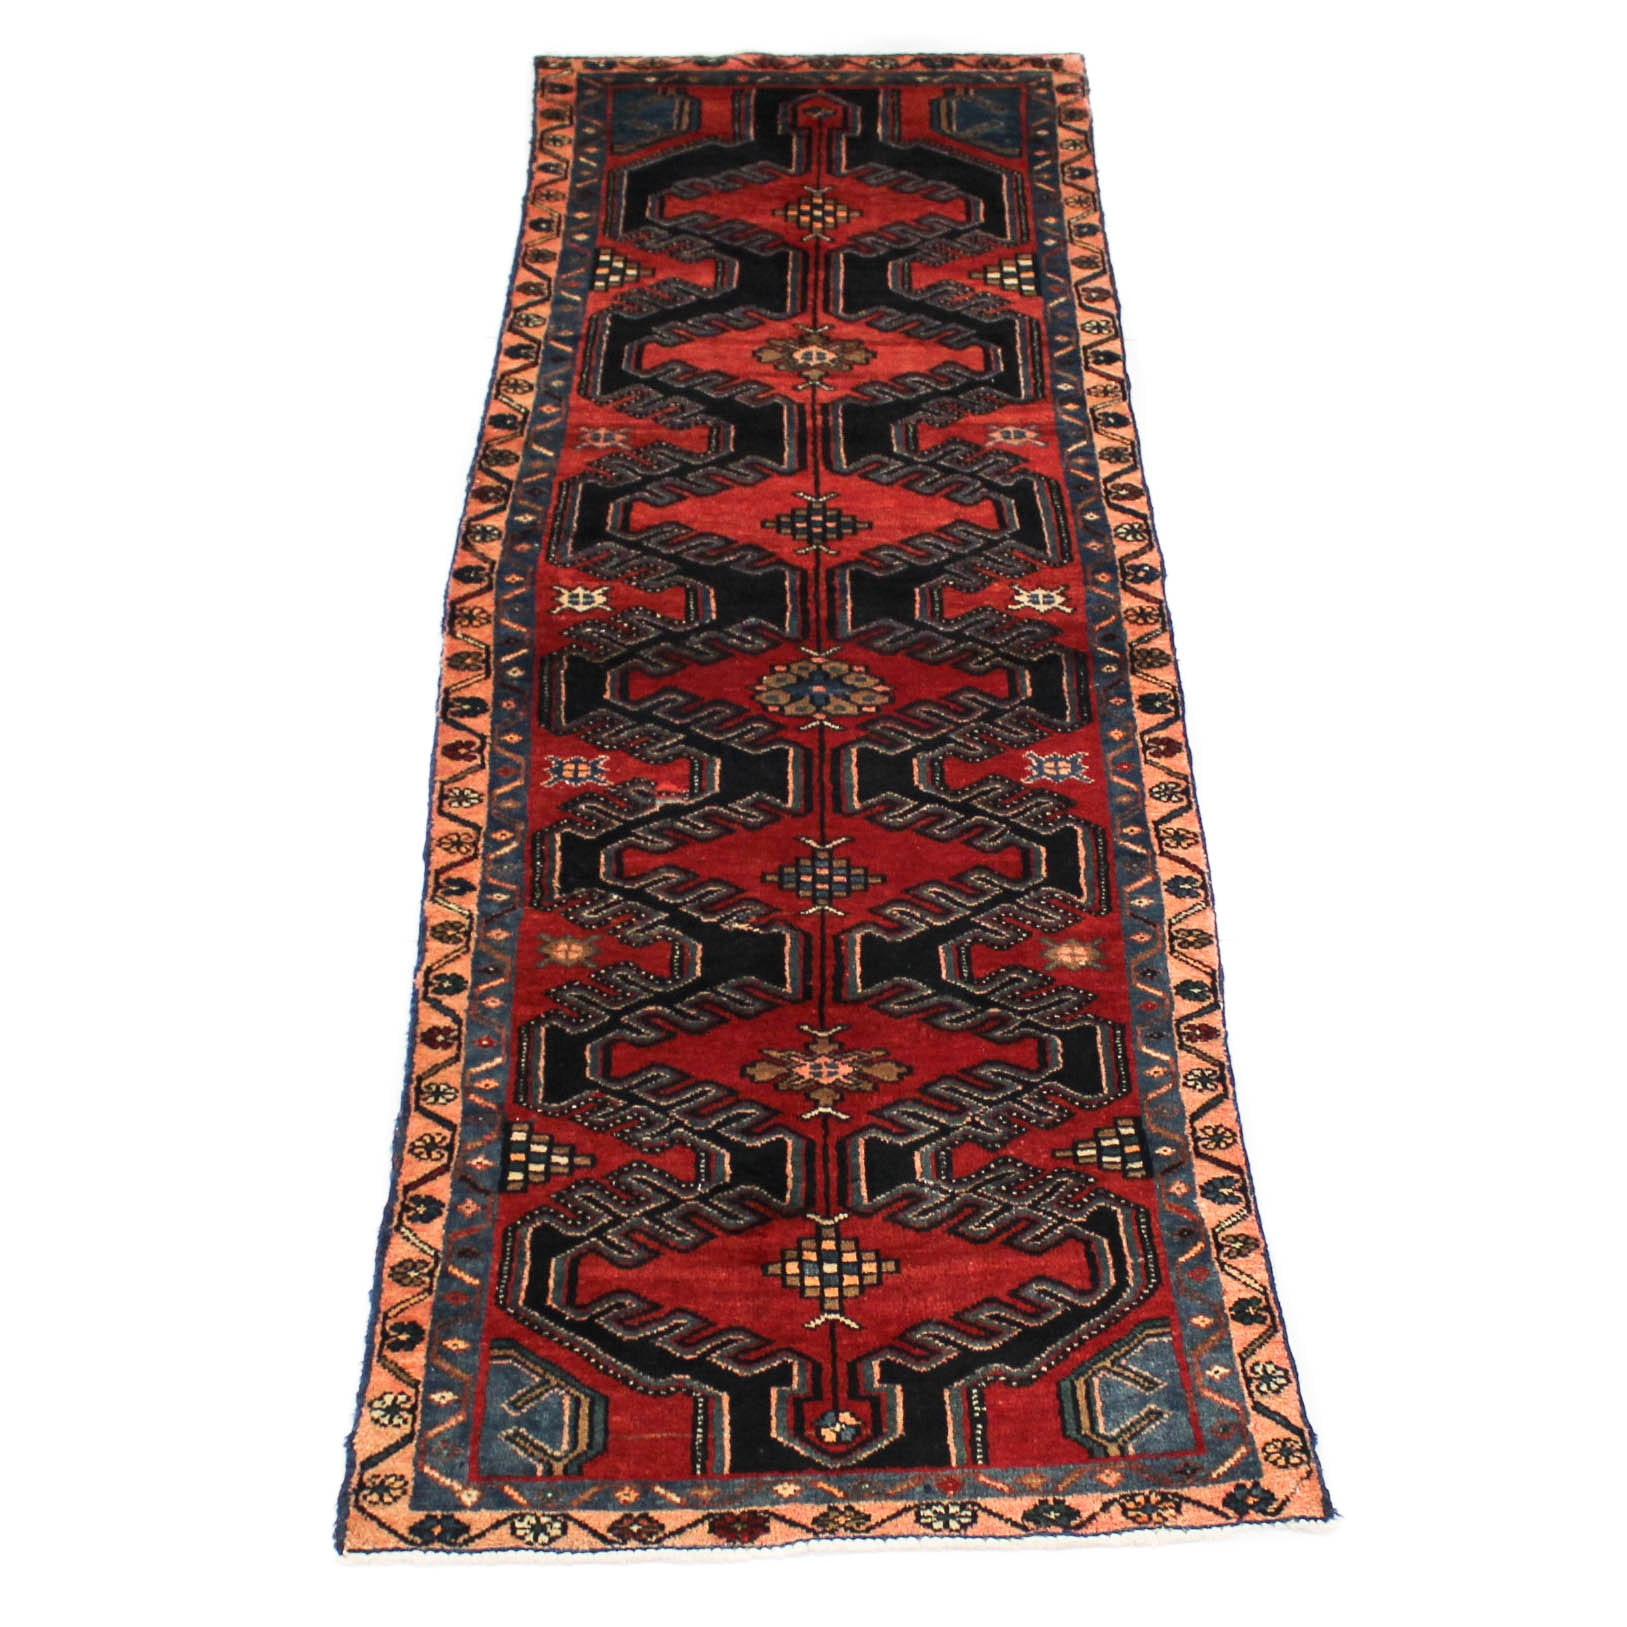 Semi-Antique Hand-Knotted Northwest Persian Carpet Runner